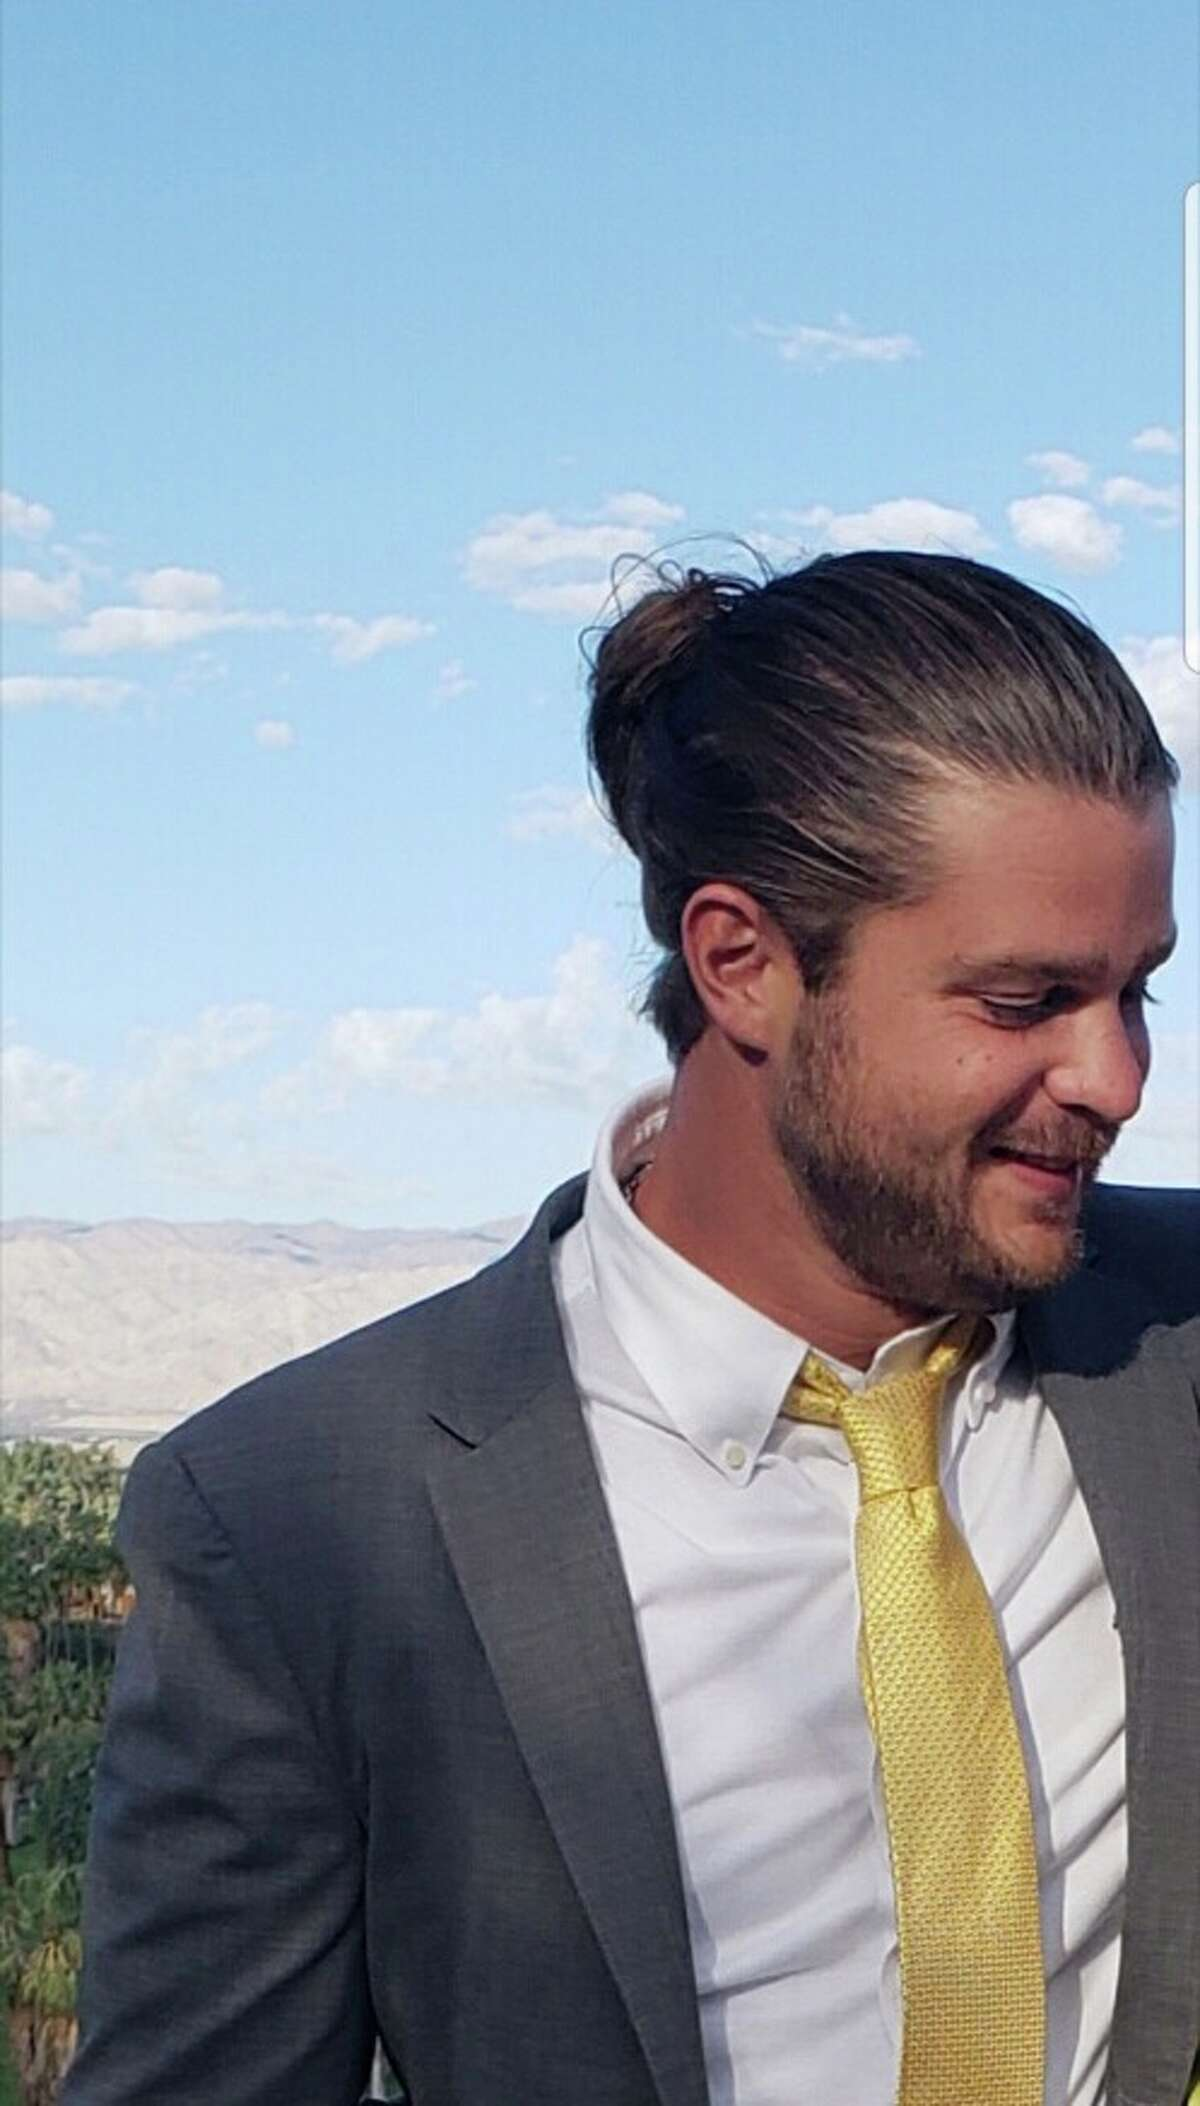 30-year-old Gene DeVito decided on Dec. 17, 2018 to drastically change his hair style. This is what his hair looked like before he went to Salon Shahin in Stamford for a new look.